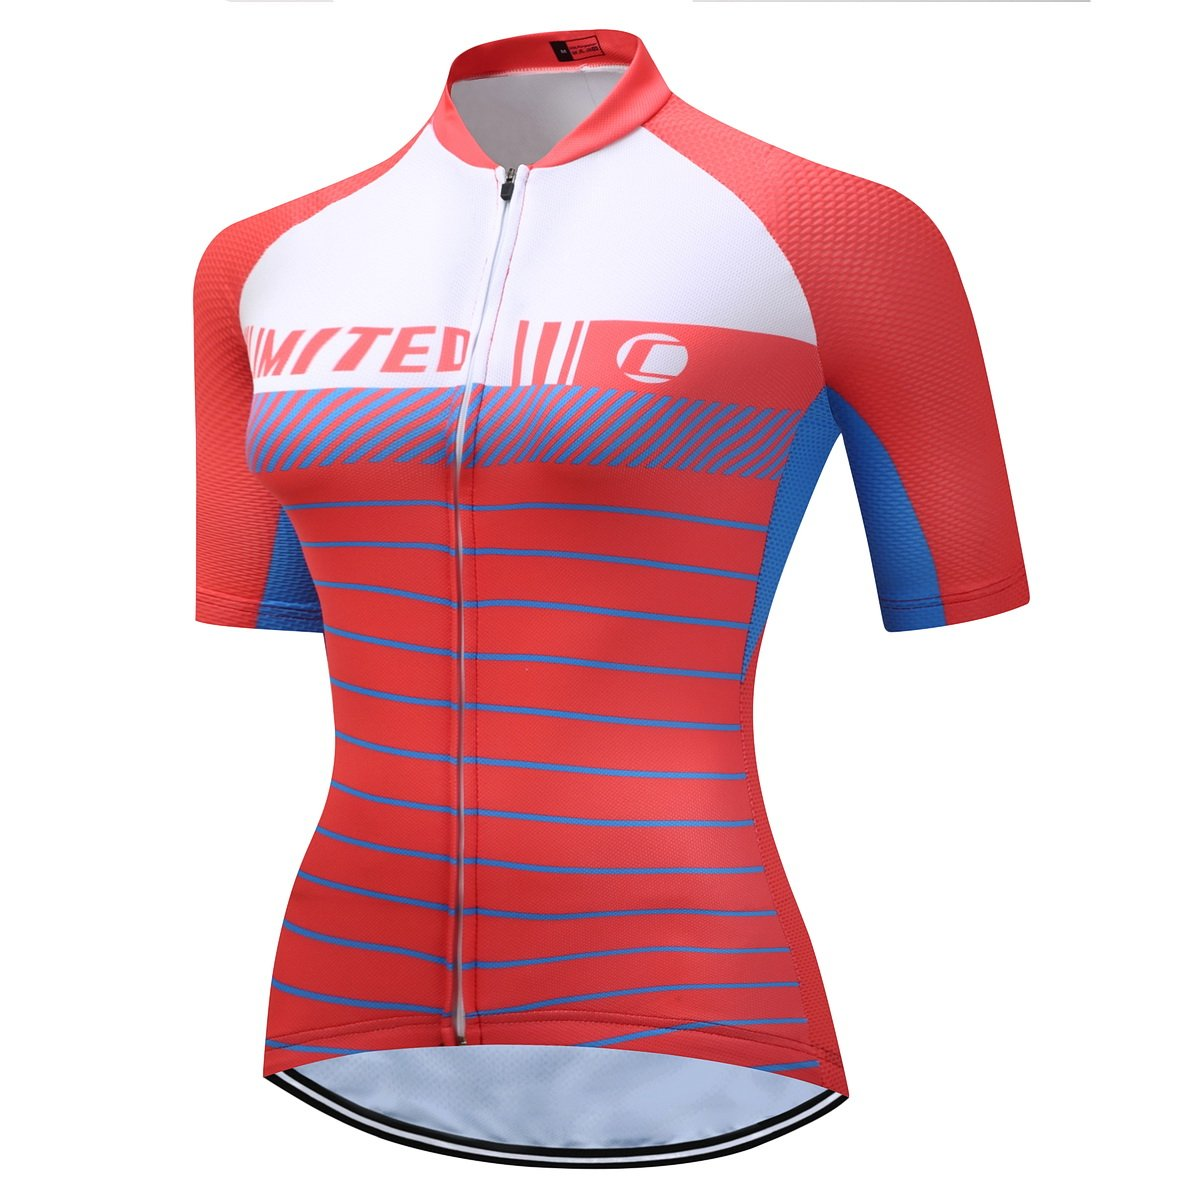 Coconut Ropamo Women's Cycling Jersey Short Sleeve Bike Shirt Cycling Clothing for Women